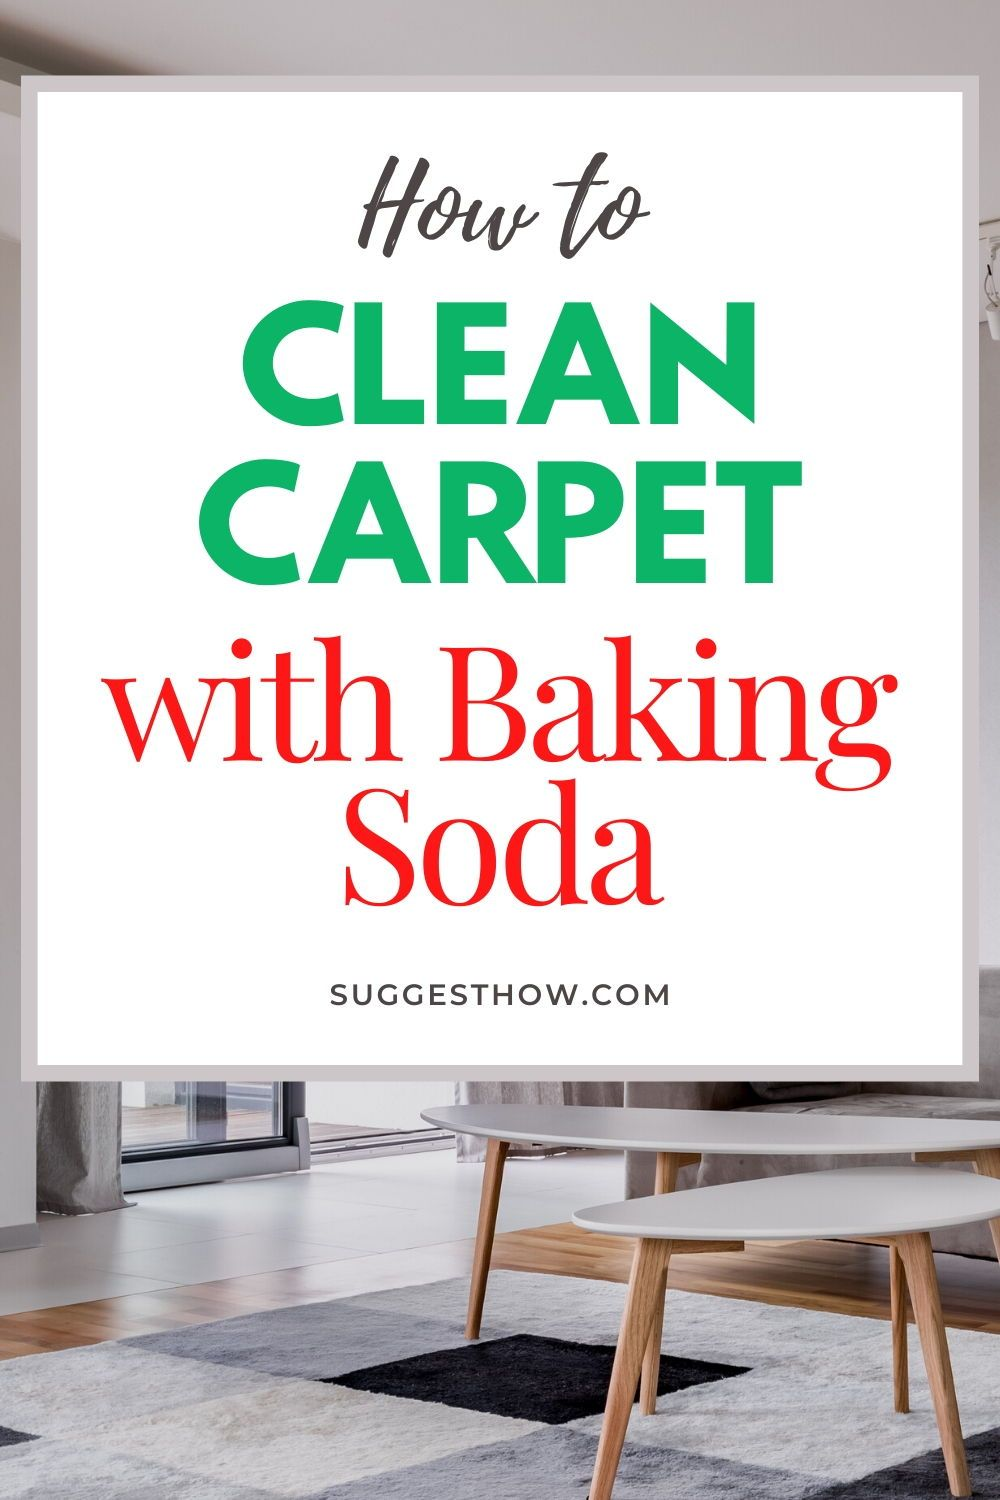 How to Clean Carpet with Baking Soda 6 Steps to Follow in